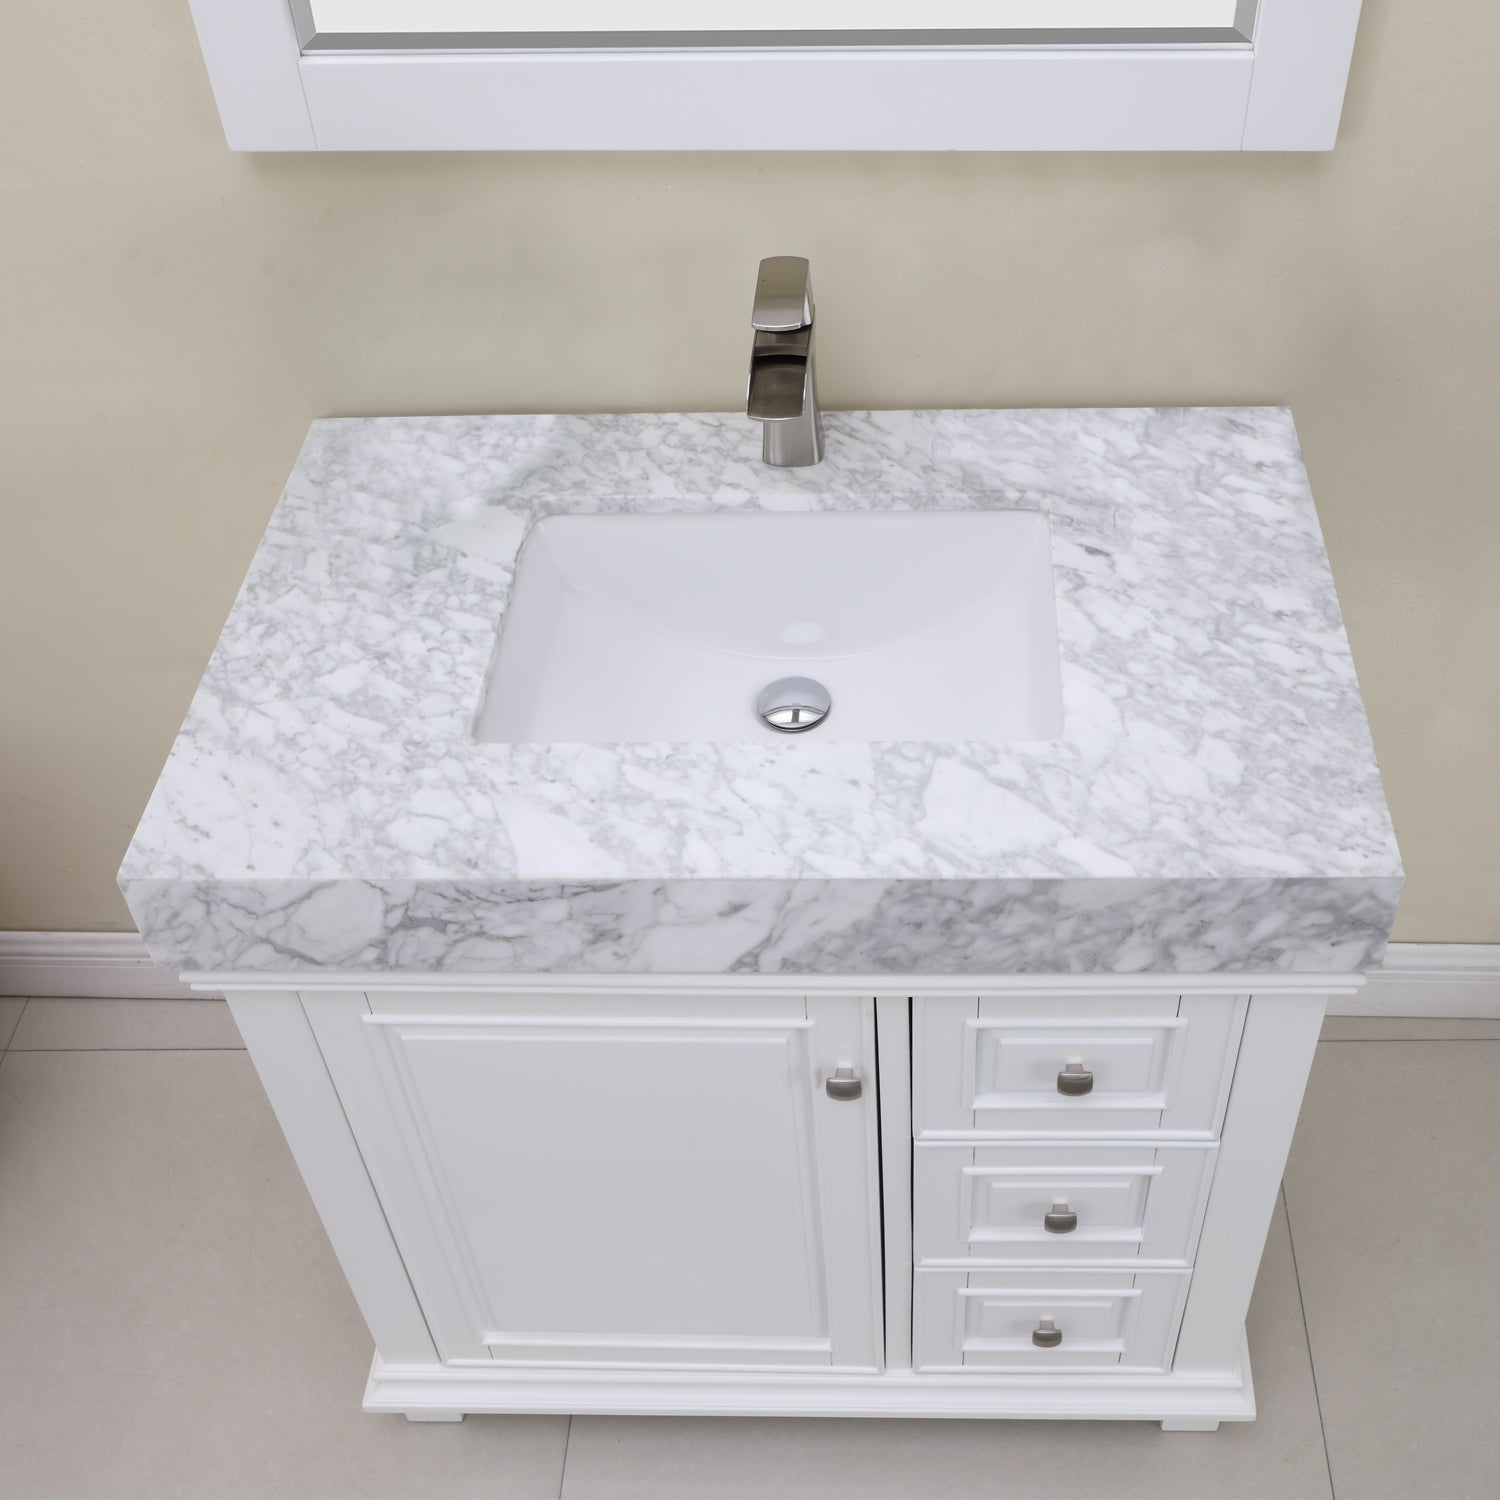 "Jardin 36"" Single Bathroom Vanity Set in White and Carrara White Marble Countertop with Mirror"